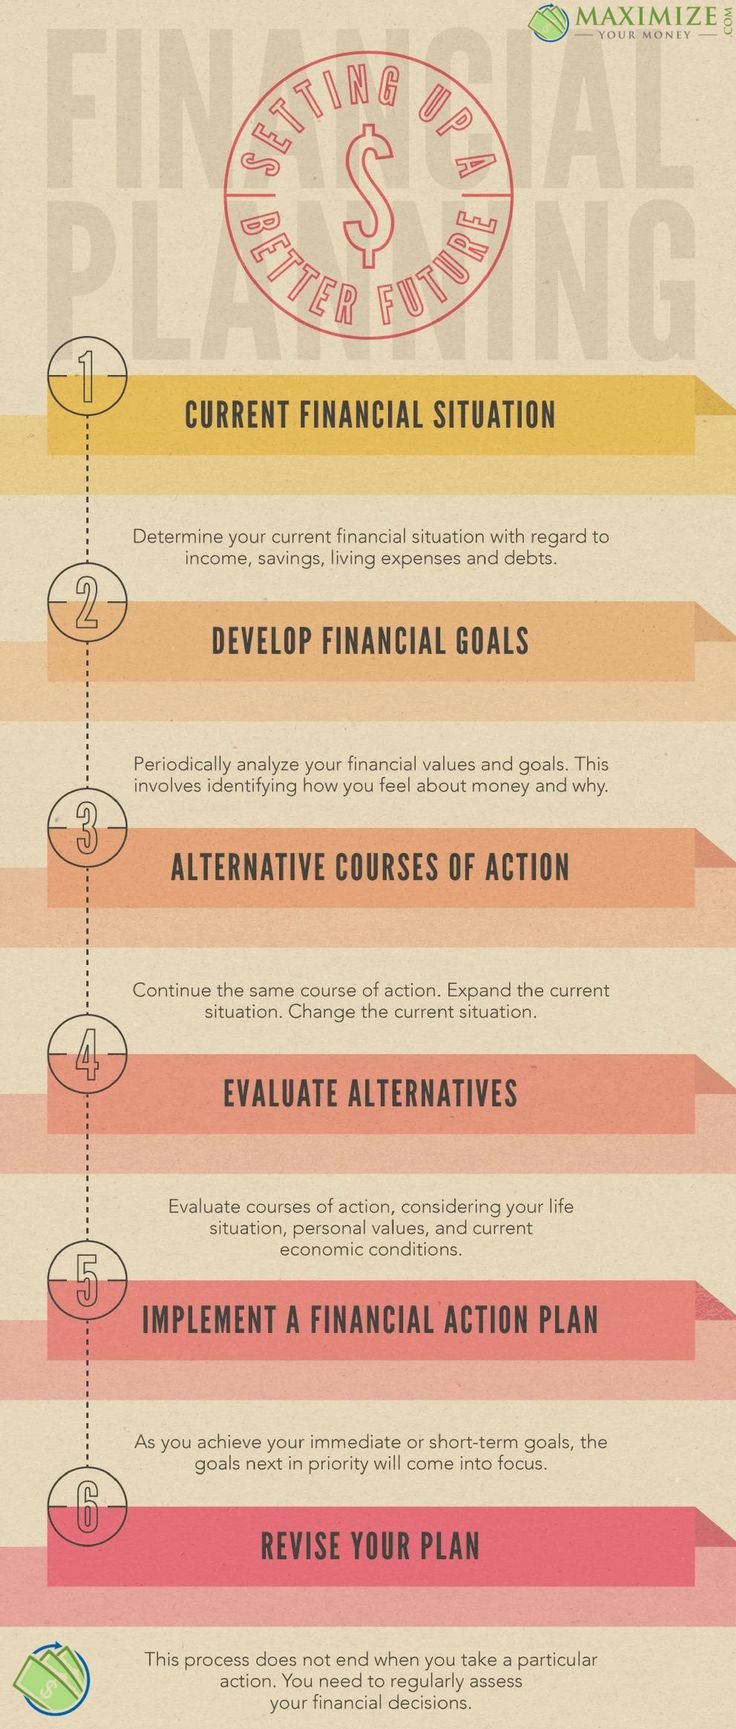 Financial planning helps lower your anxiety over money and improves your confidence in achieving financial goals.  A financial plan will align your finances with your values, priorities, and dreams.  #money #financialfreedom #success #finance #investing #budgeting